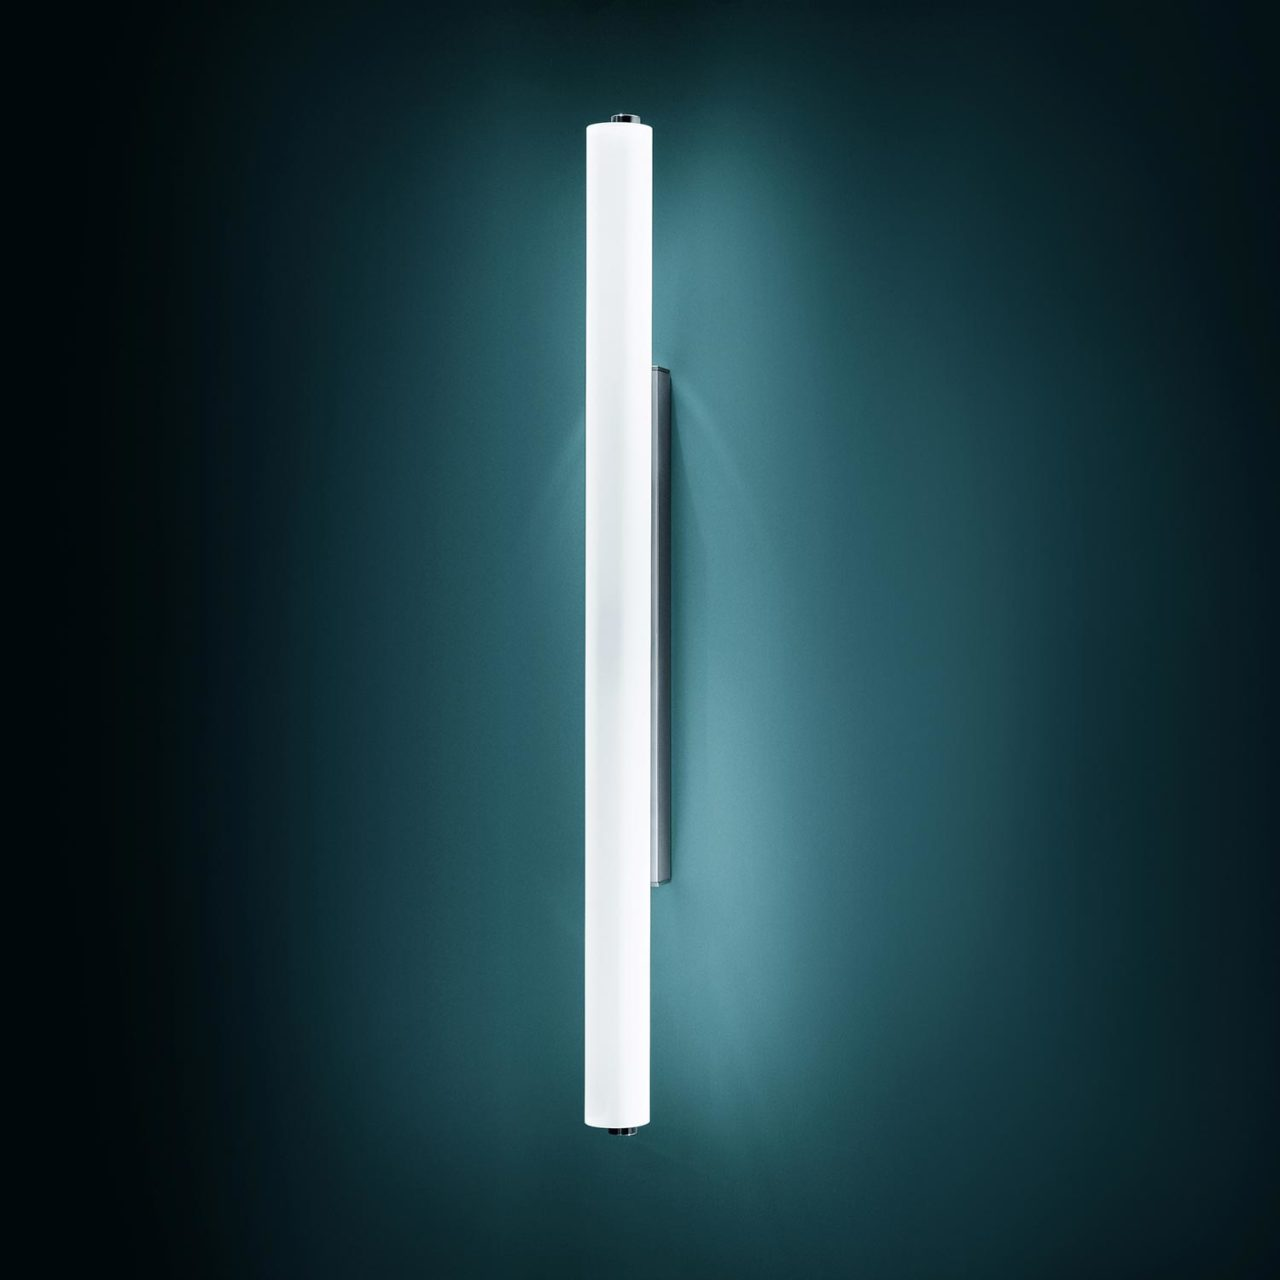 Norma 95 - wall light